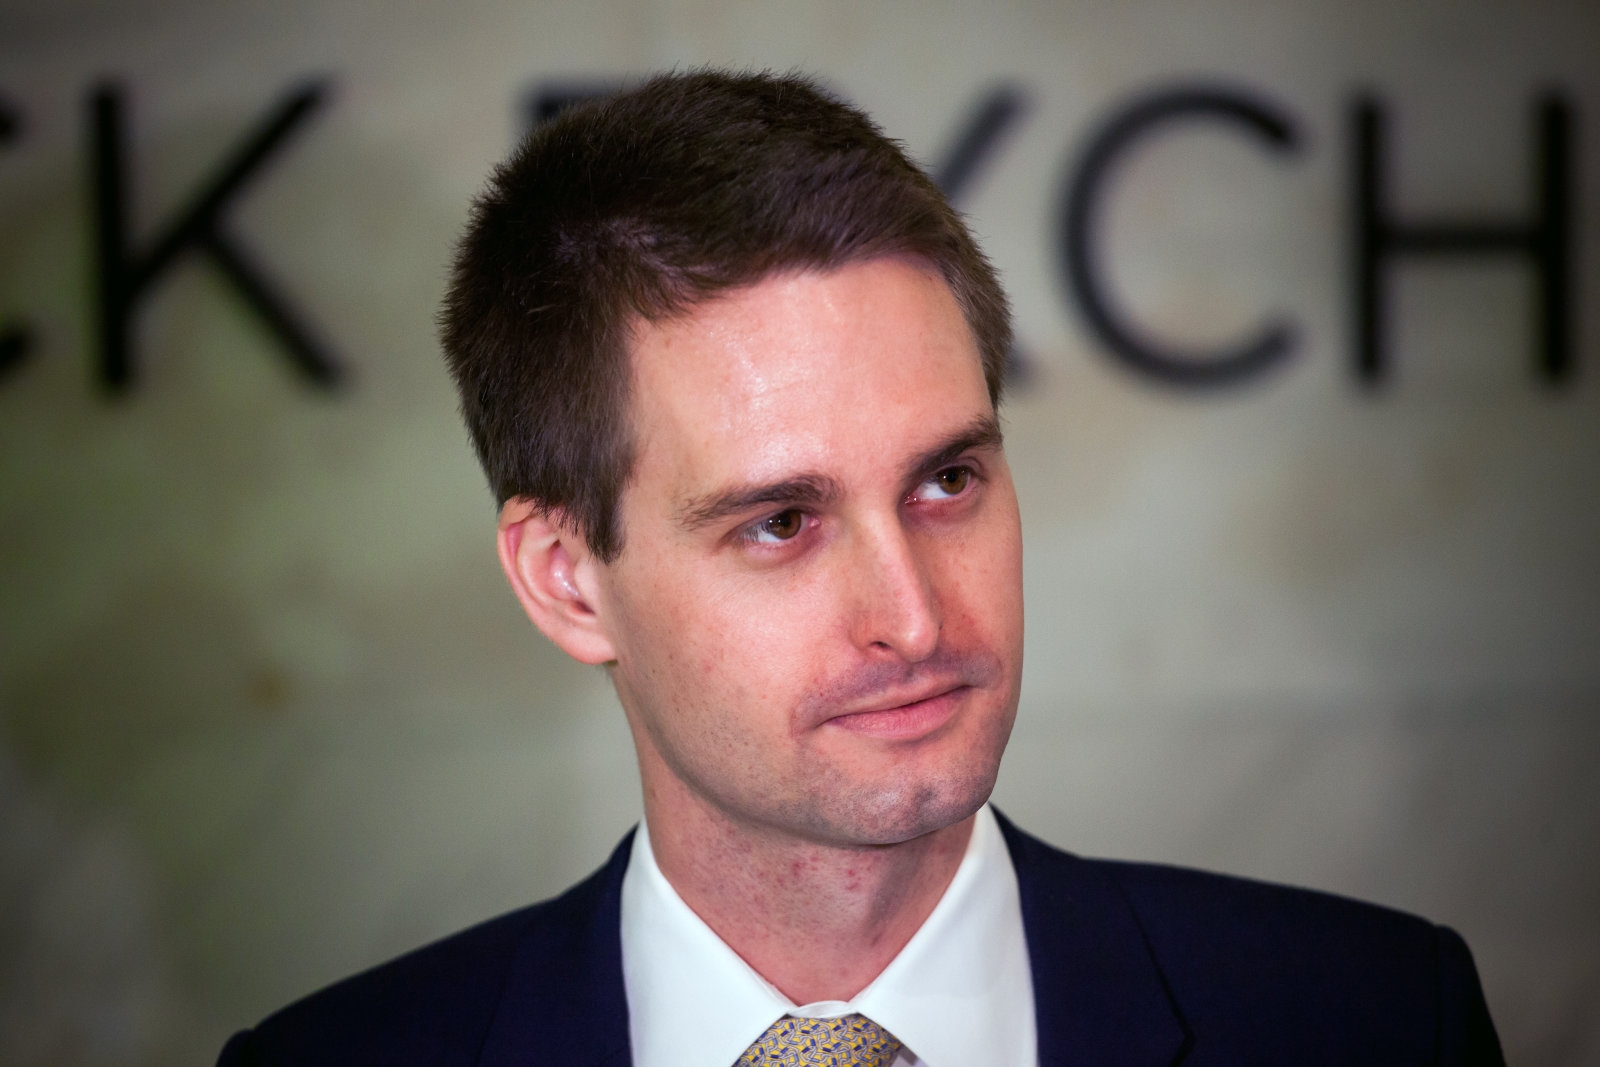 Snapchat CEO throws shade at Facebook's poor data practices | DeviceDaily.com